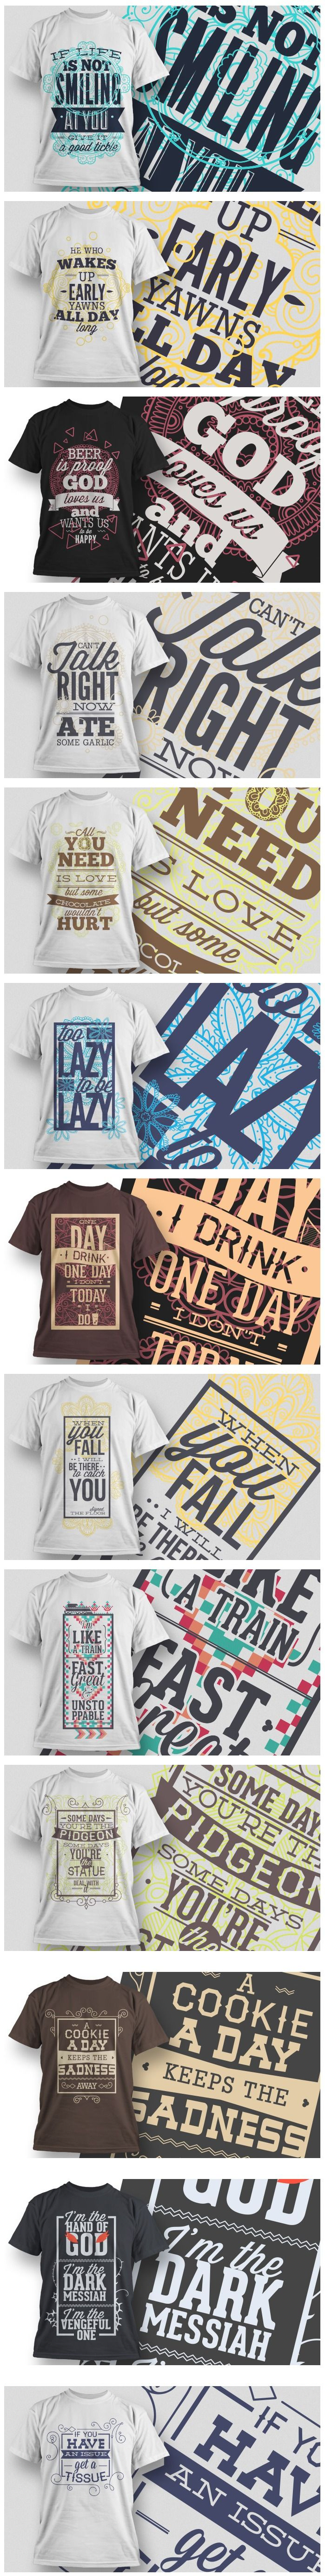 Find these awesome T-shirt Designs and even more here: https://www.inkydeals.com/deal/100-premium-t-shirt-designs/